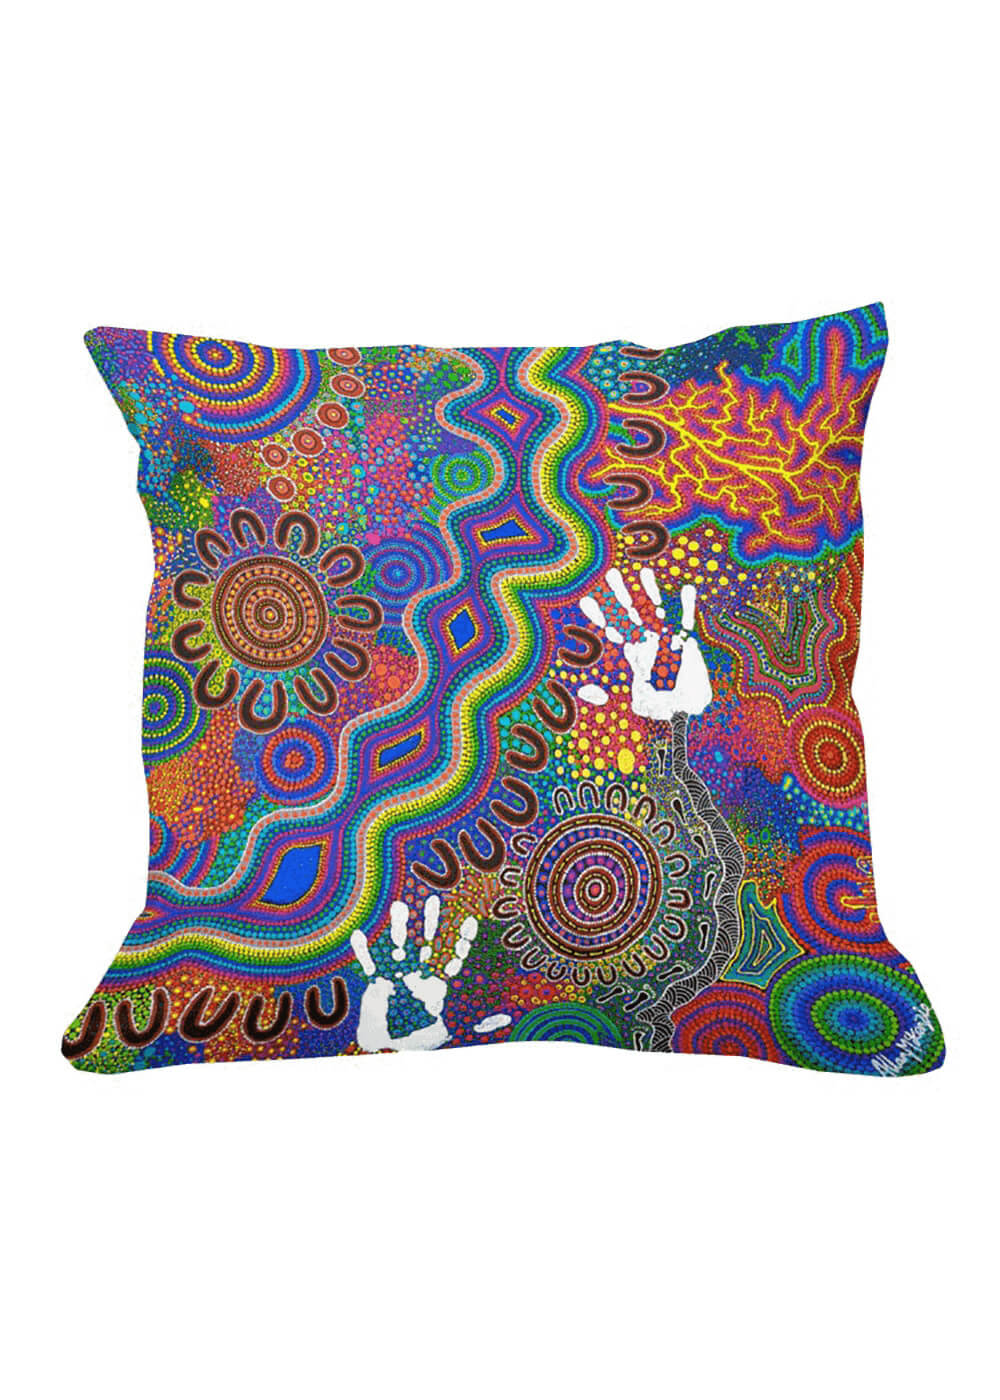 The Power Within Cushion Cover